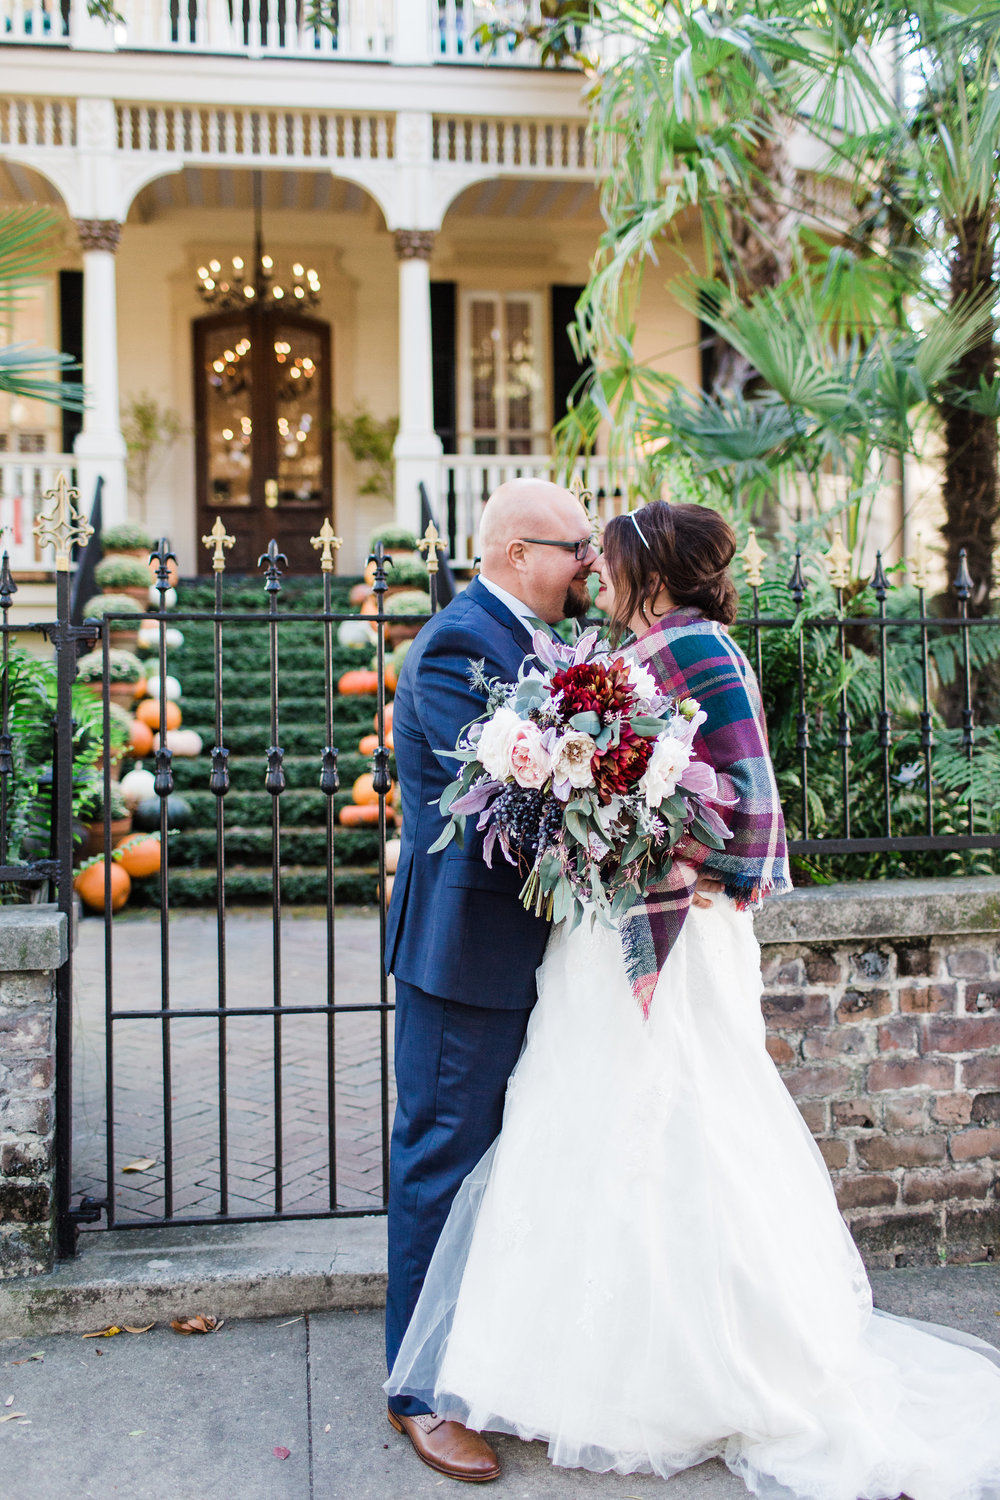 apt-b-photography-kristy-rob-wormsloe-elopment-savannah-wedding-photographer-savannah-elopement-wormsloe-wedding-historic-savannah-elopement-photographer-savannah-fall-wedding-33.jpg